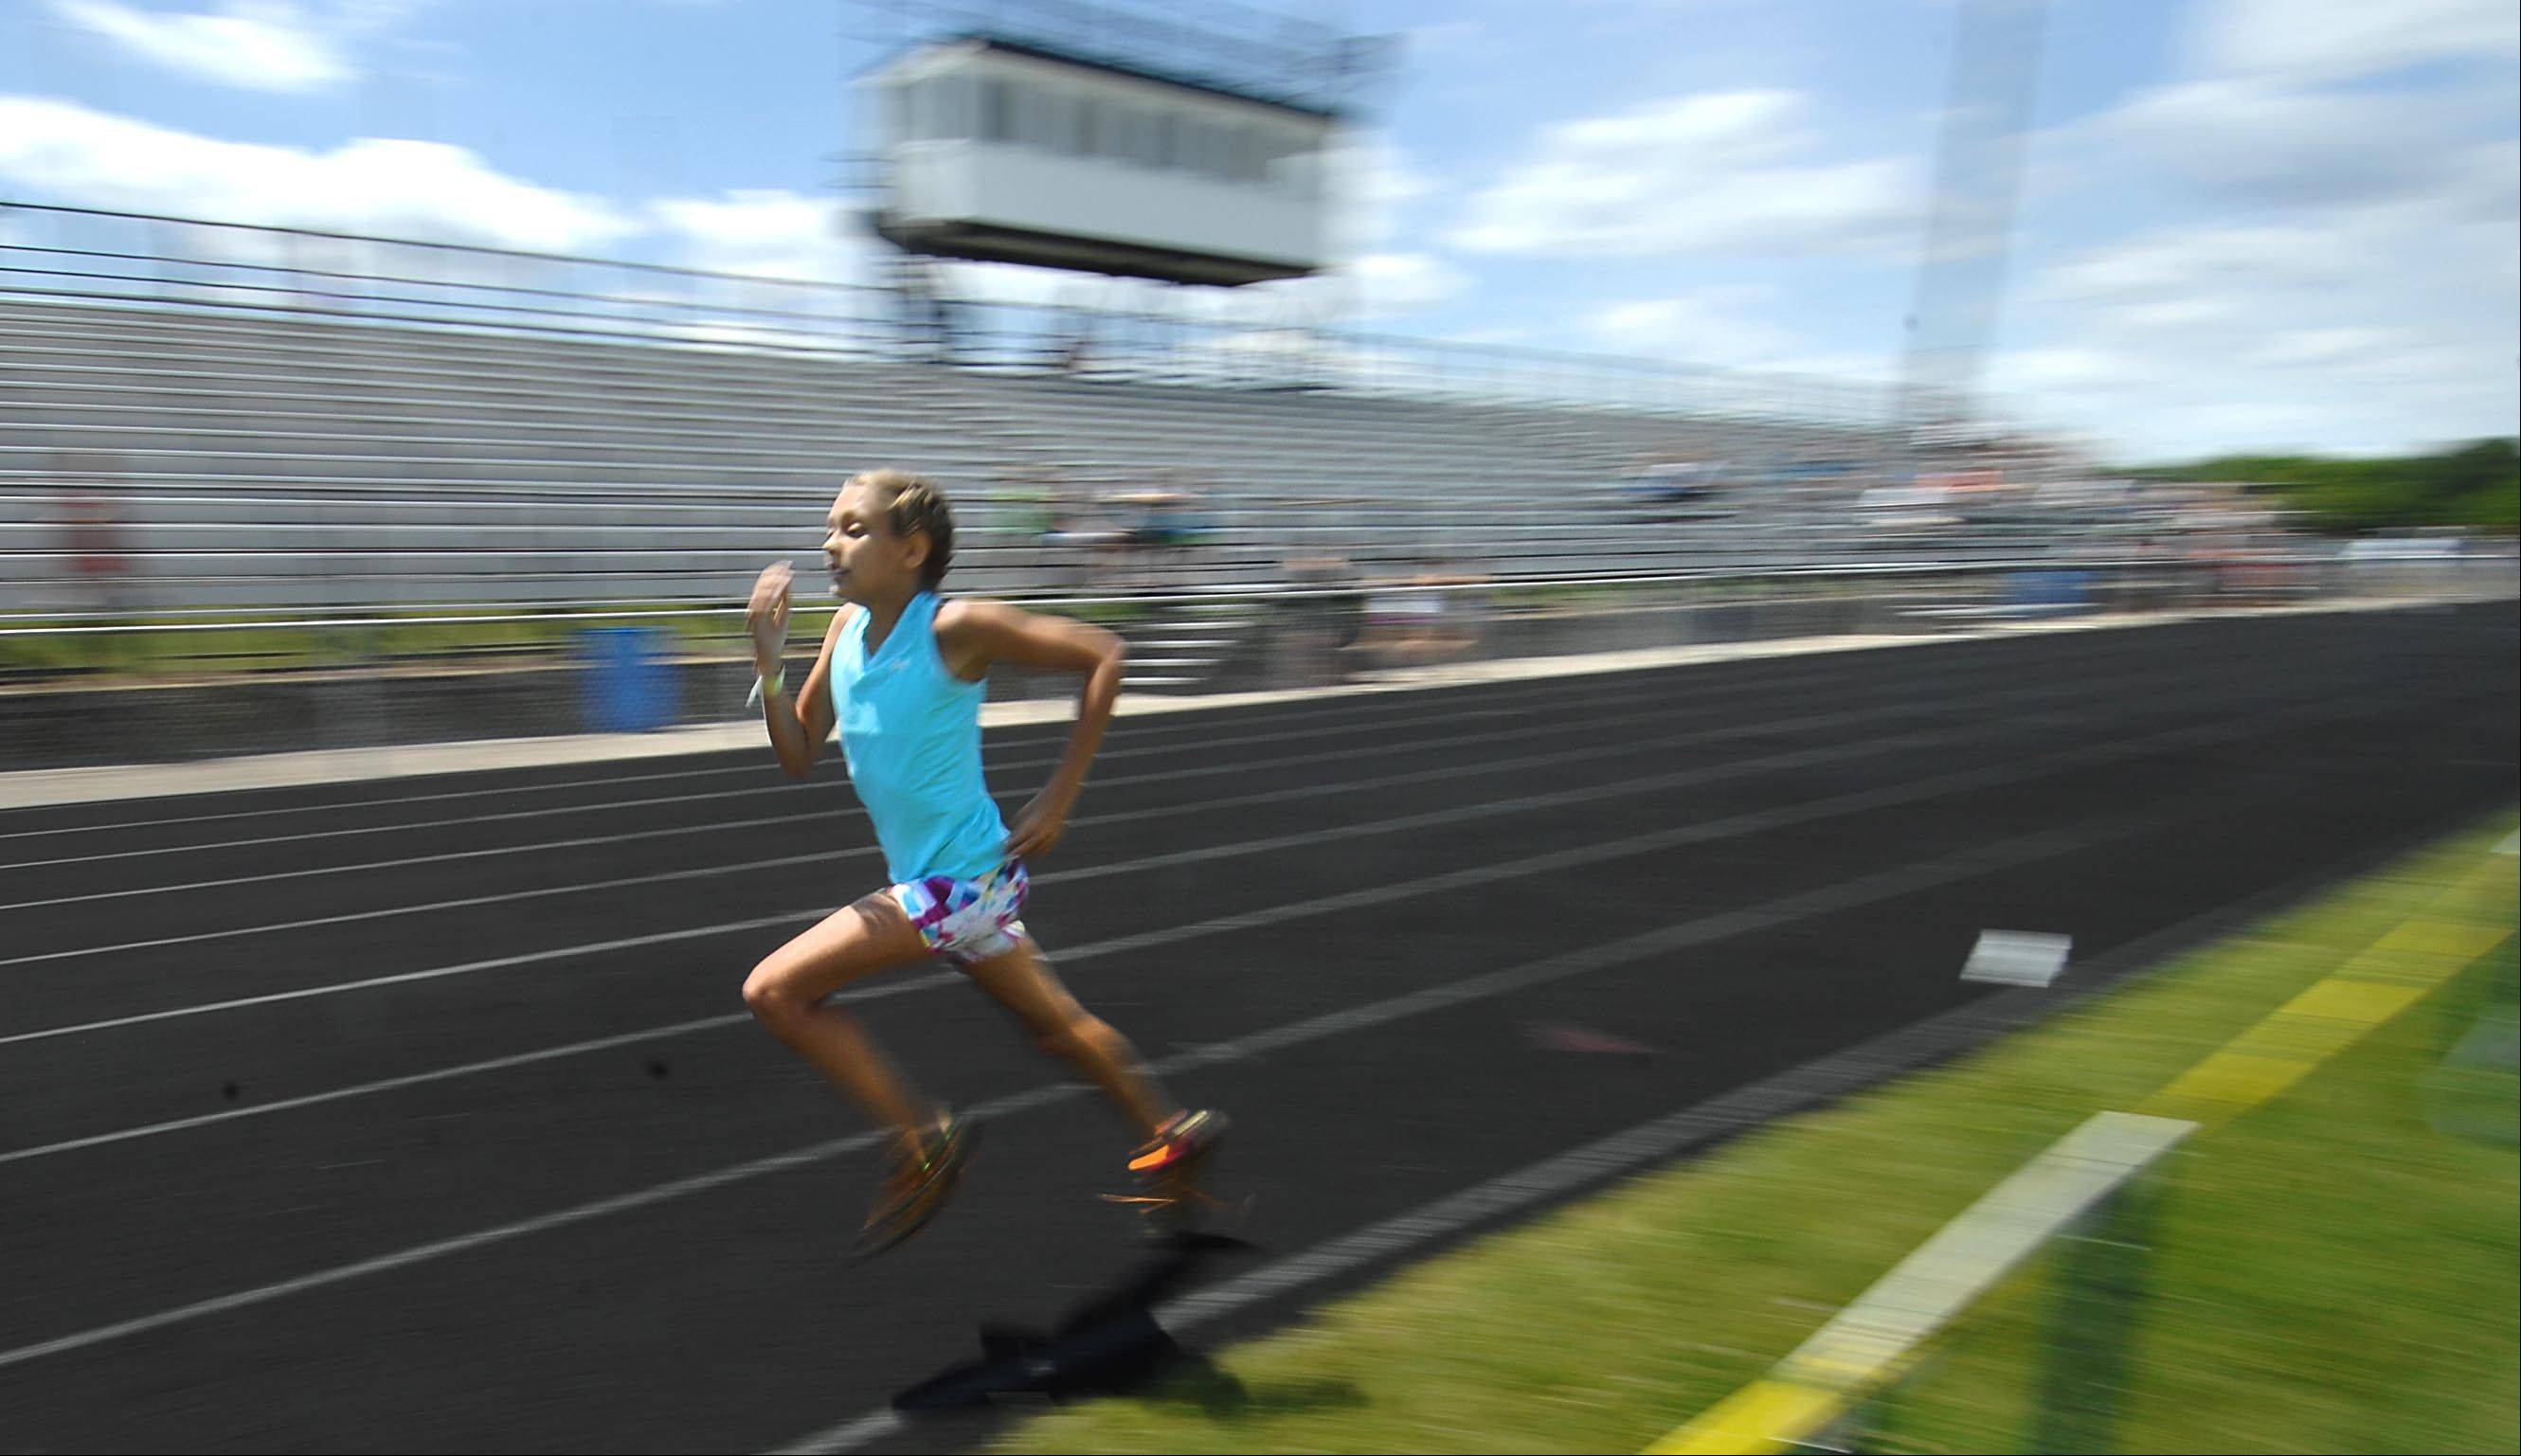 Chloe Smith, 12, of Lake in the Hills, wins the 800-meter run Sunday at the Hershey National Track and Field Games at Cary-Grove High School. The Cary Park District and Hershey ran the event, which was open to all 9-14-year-olds. Winners may be able to advance and compete in a national meet later.